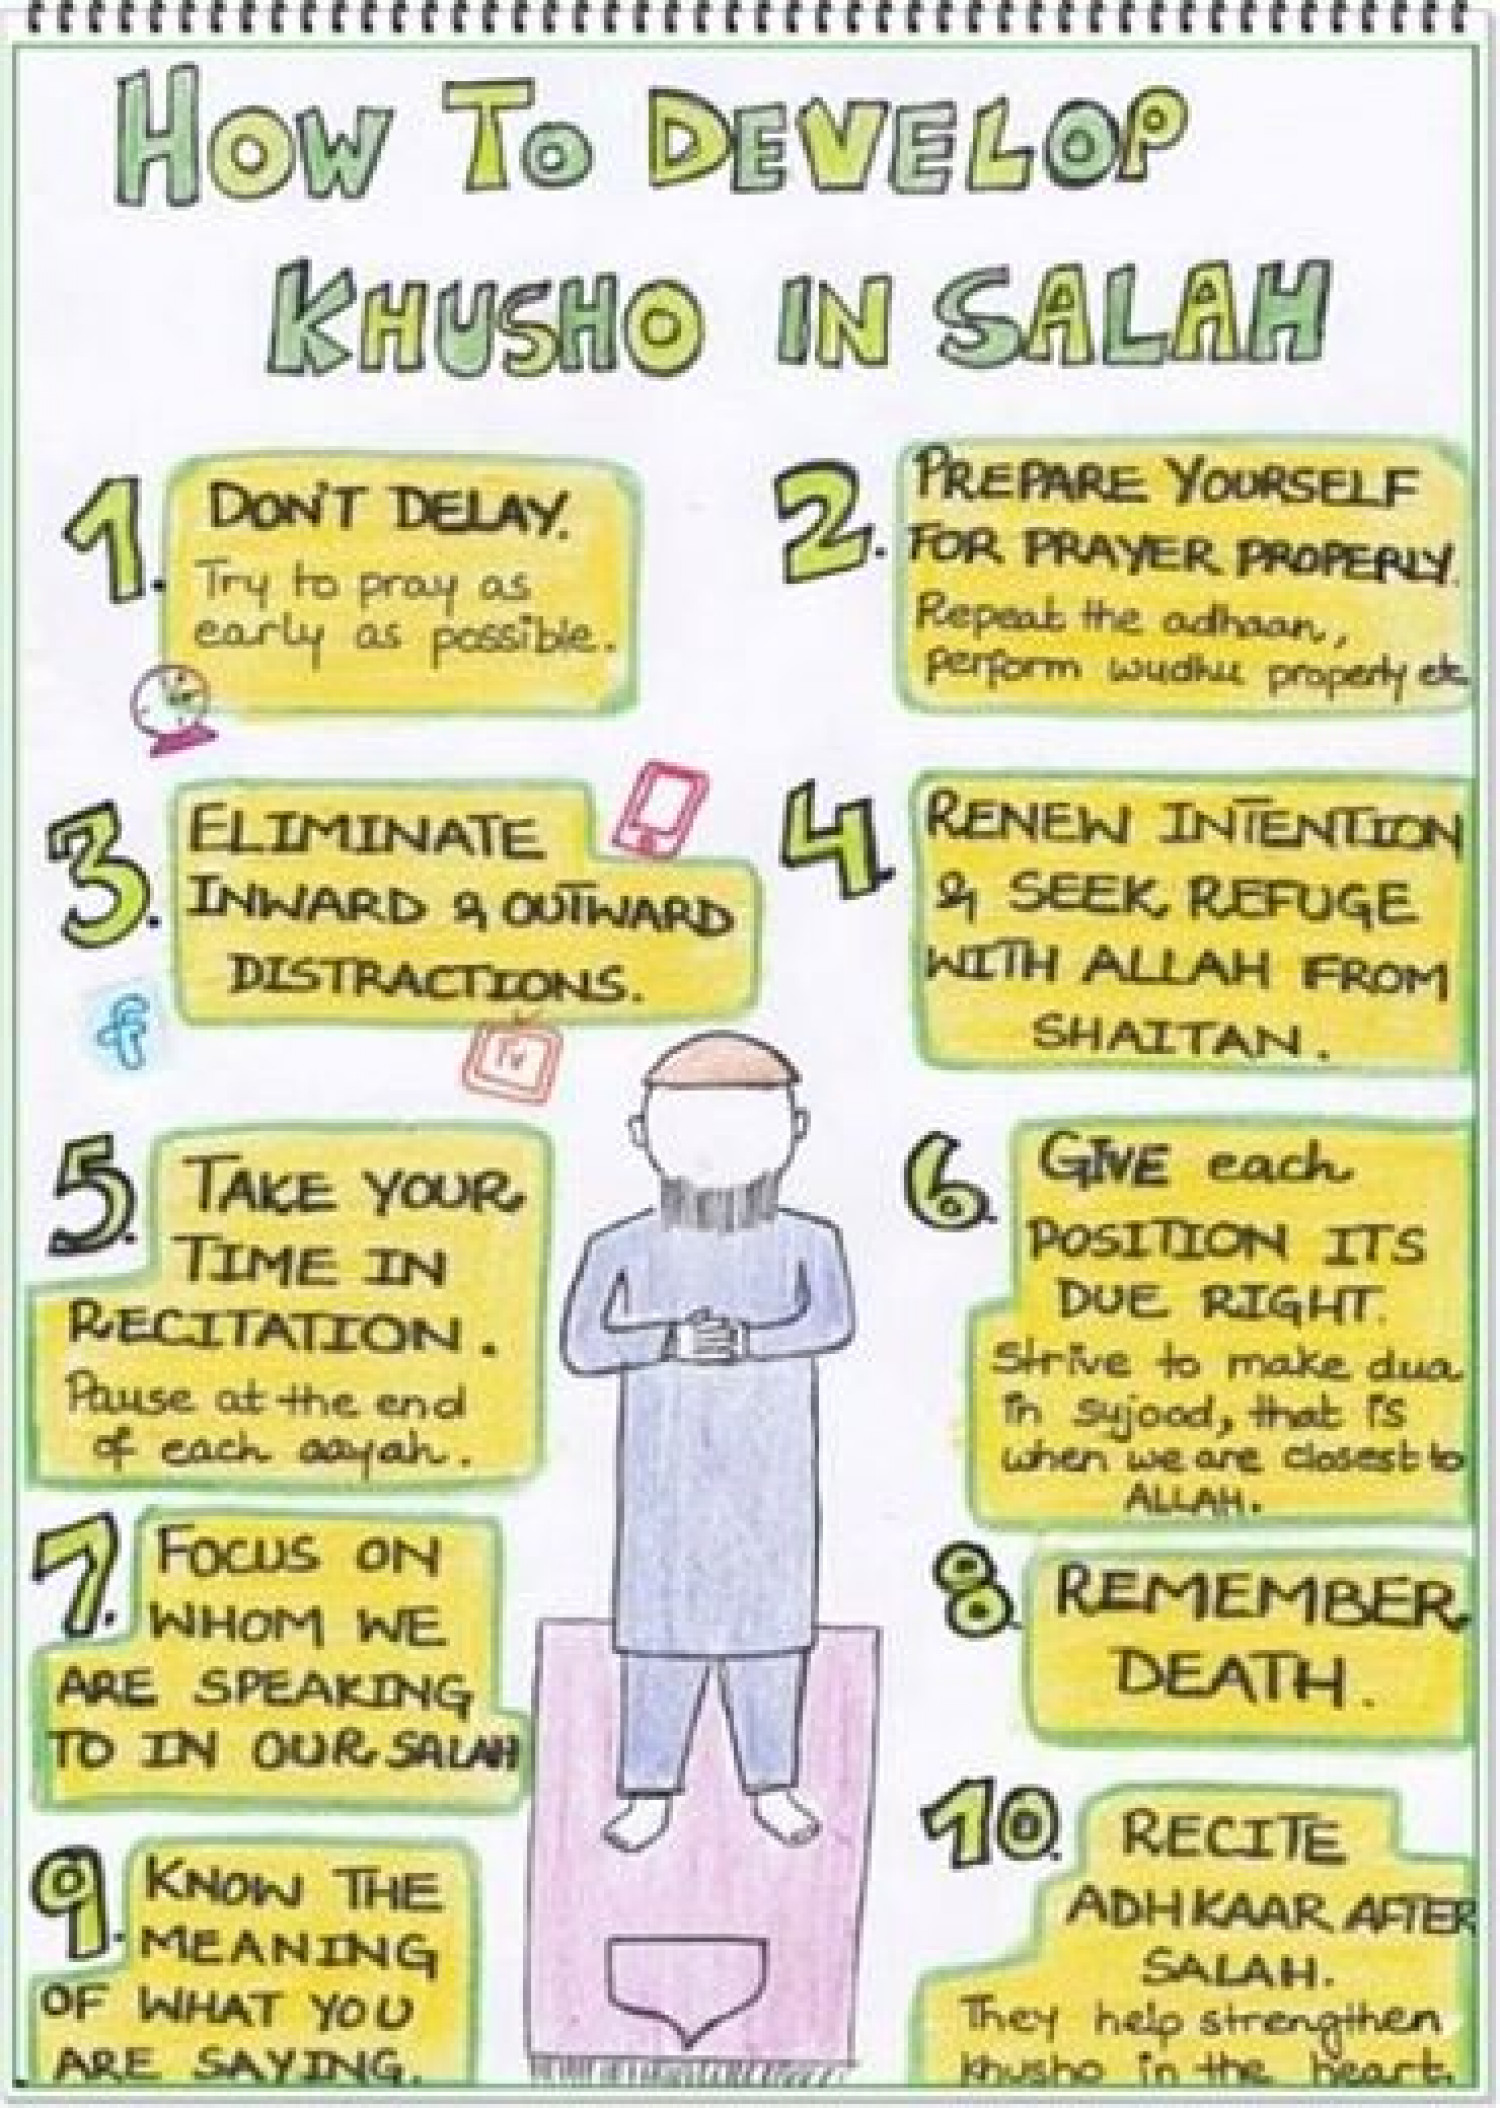 How To Develop Khusho In Salah Infographic